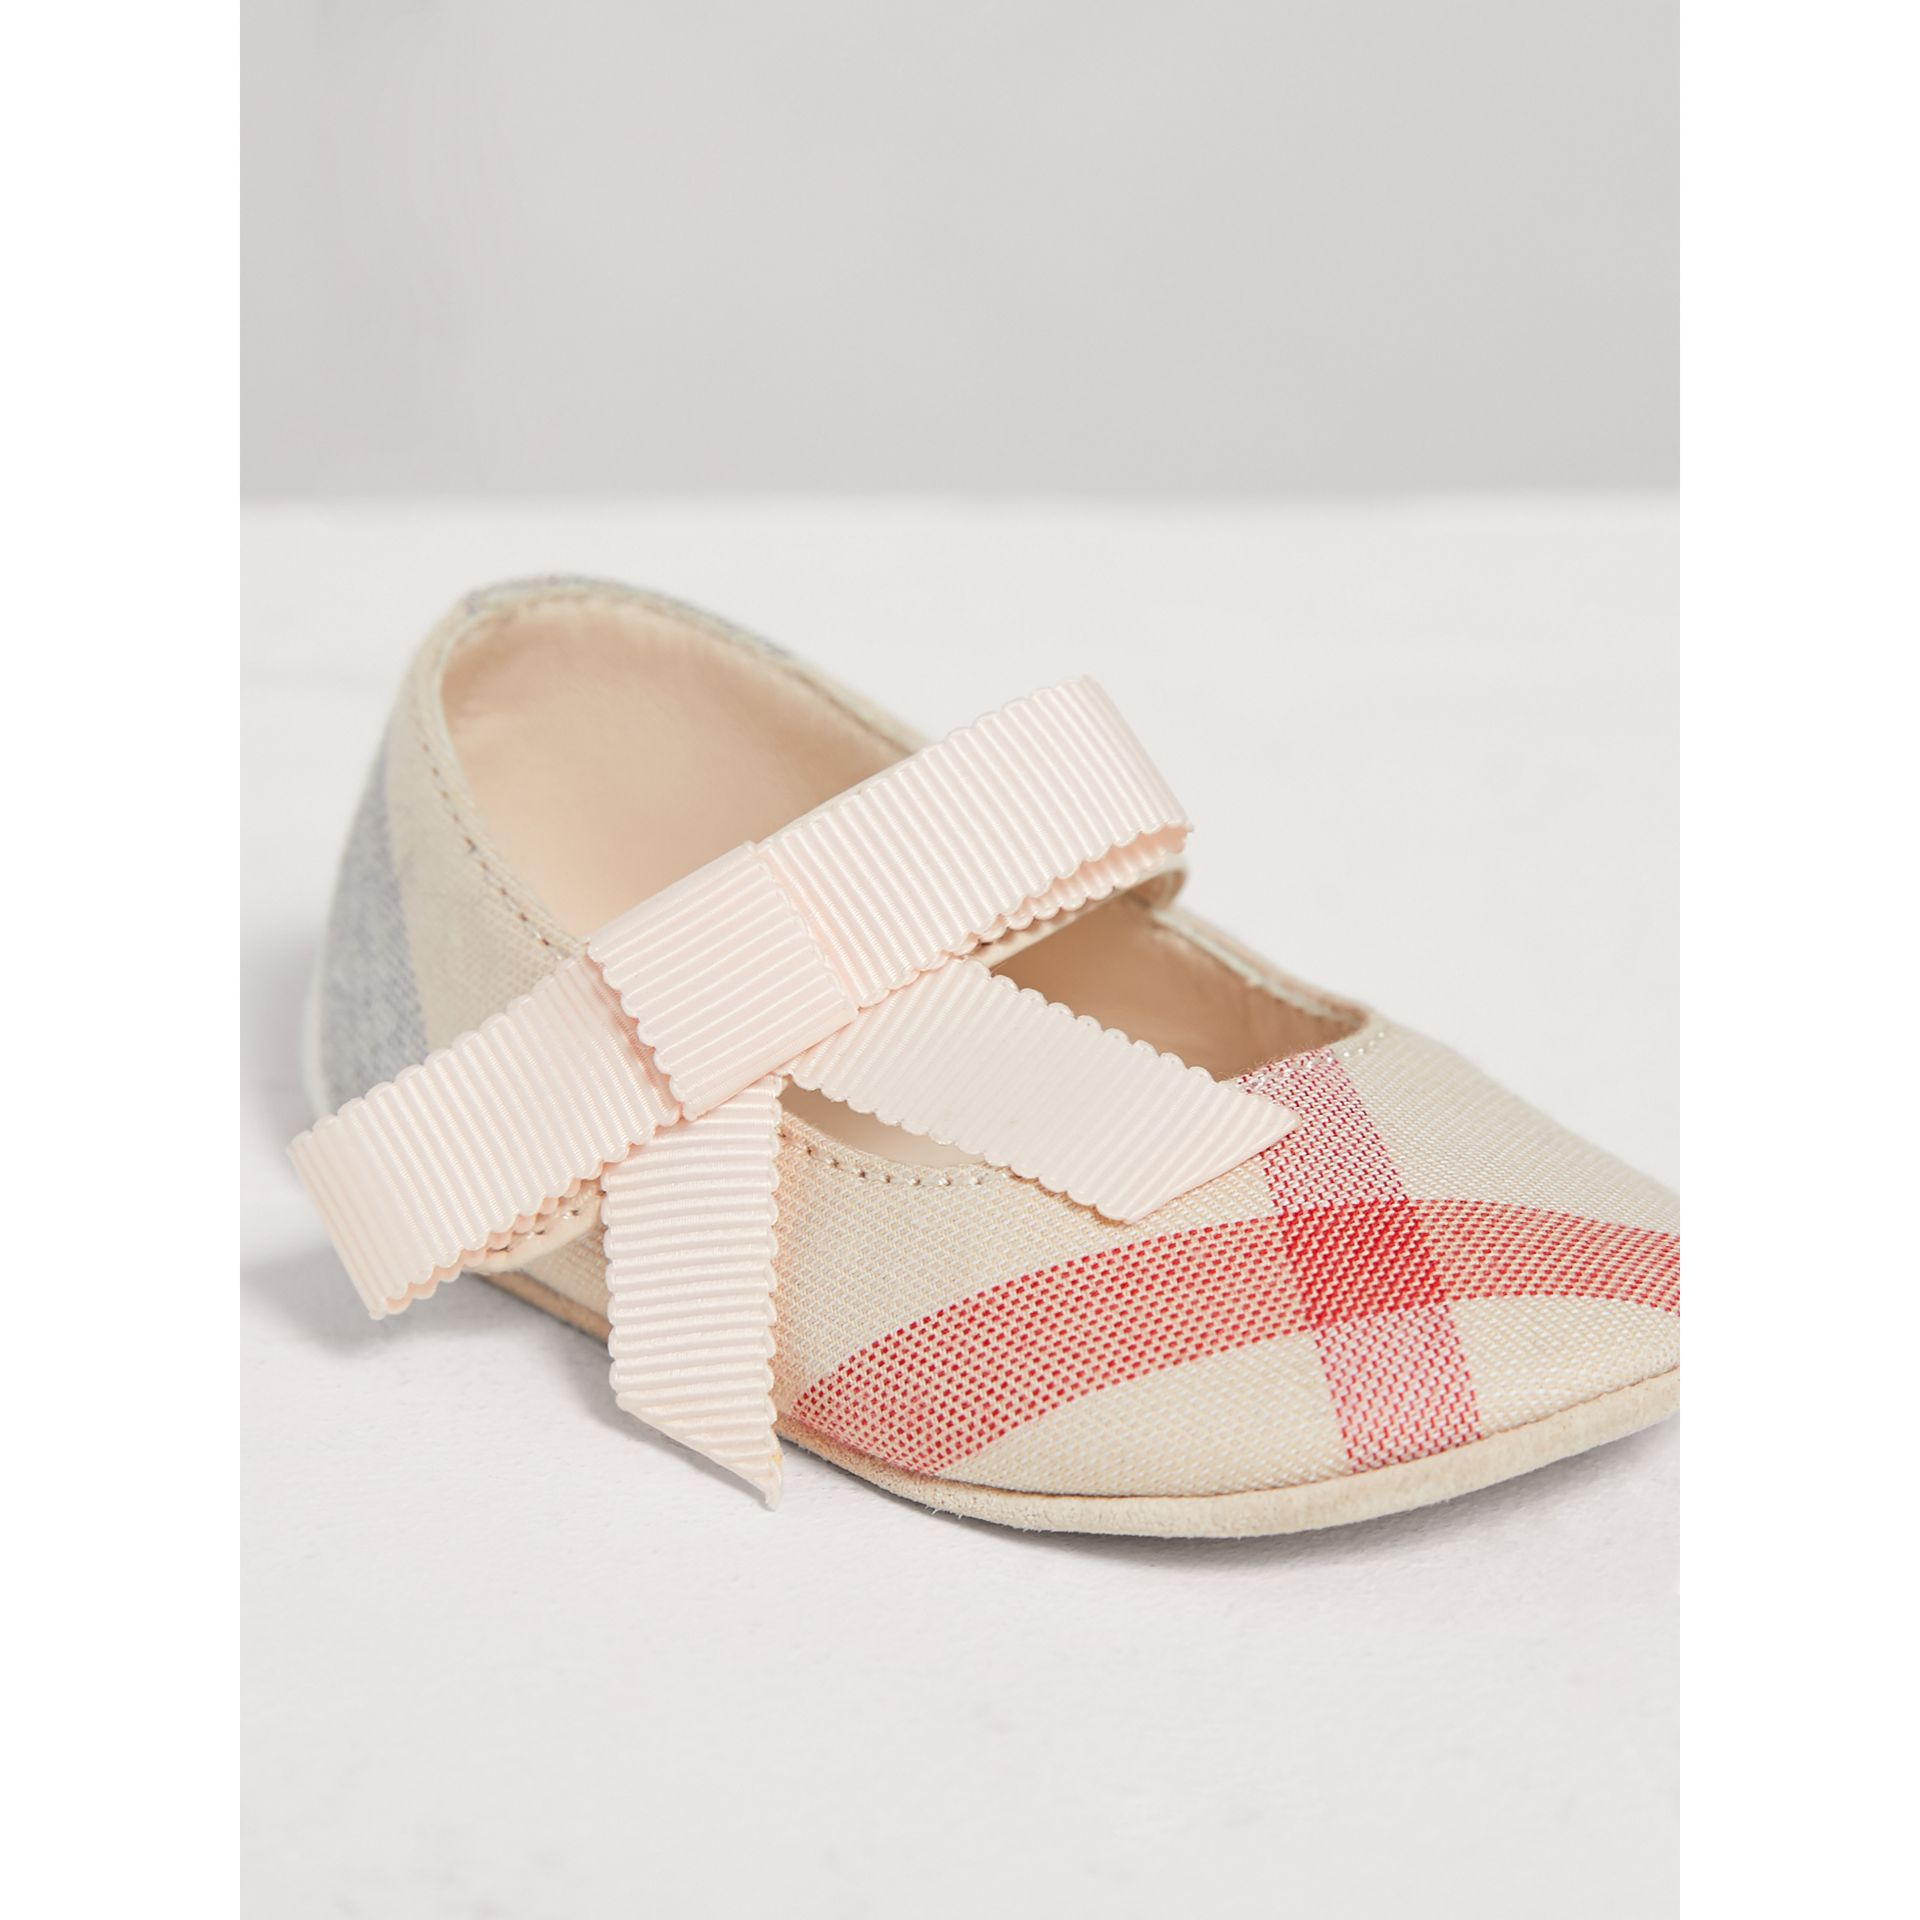 Bow Detail Check Cotton and Leather Ballerinas in Pale Classic - Children | Burberry Canada - gallery image 3